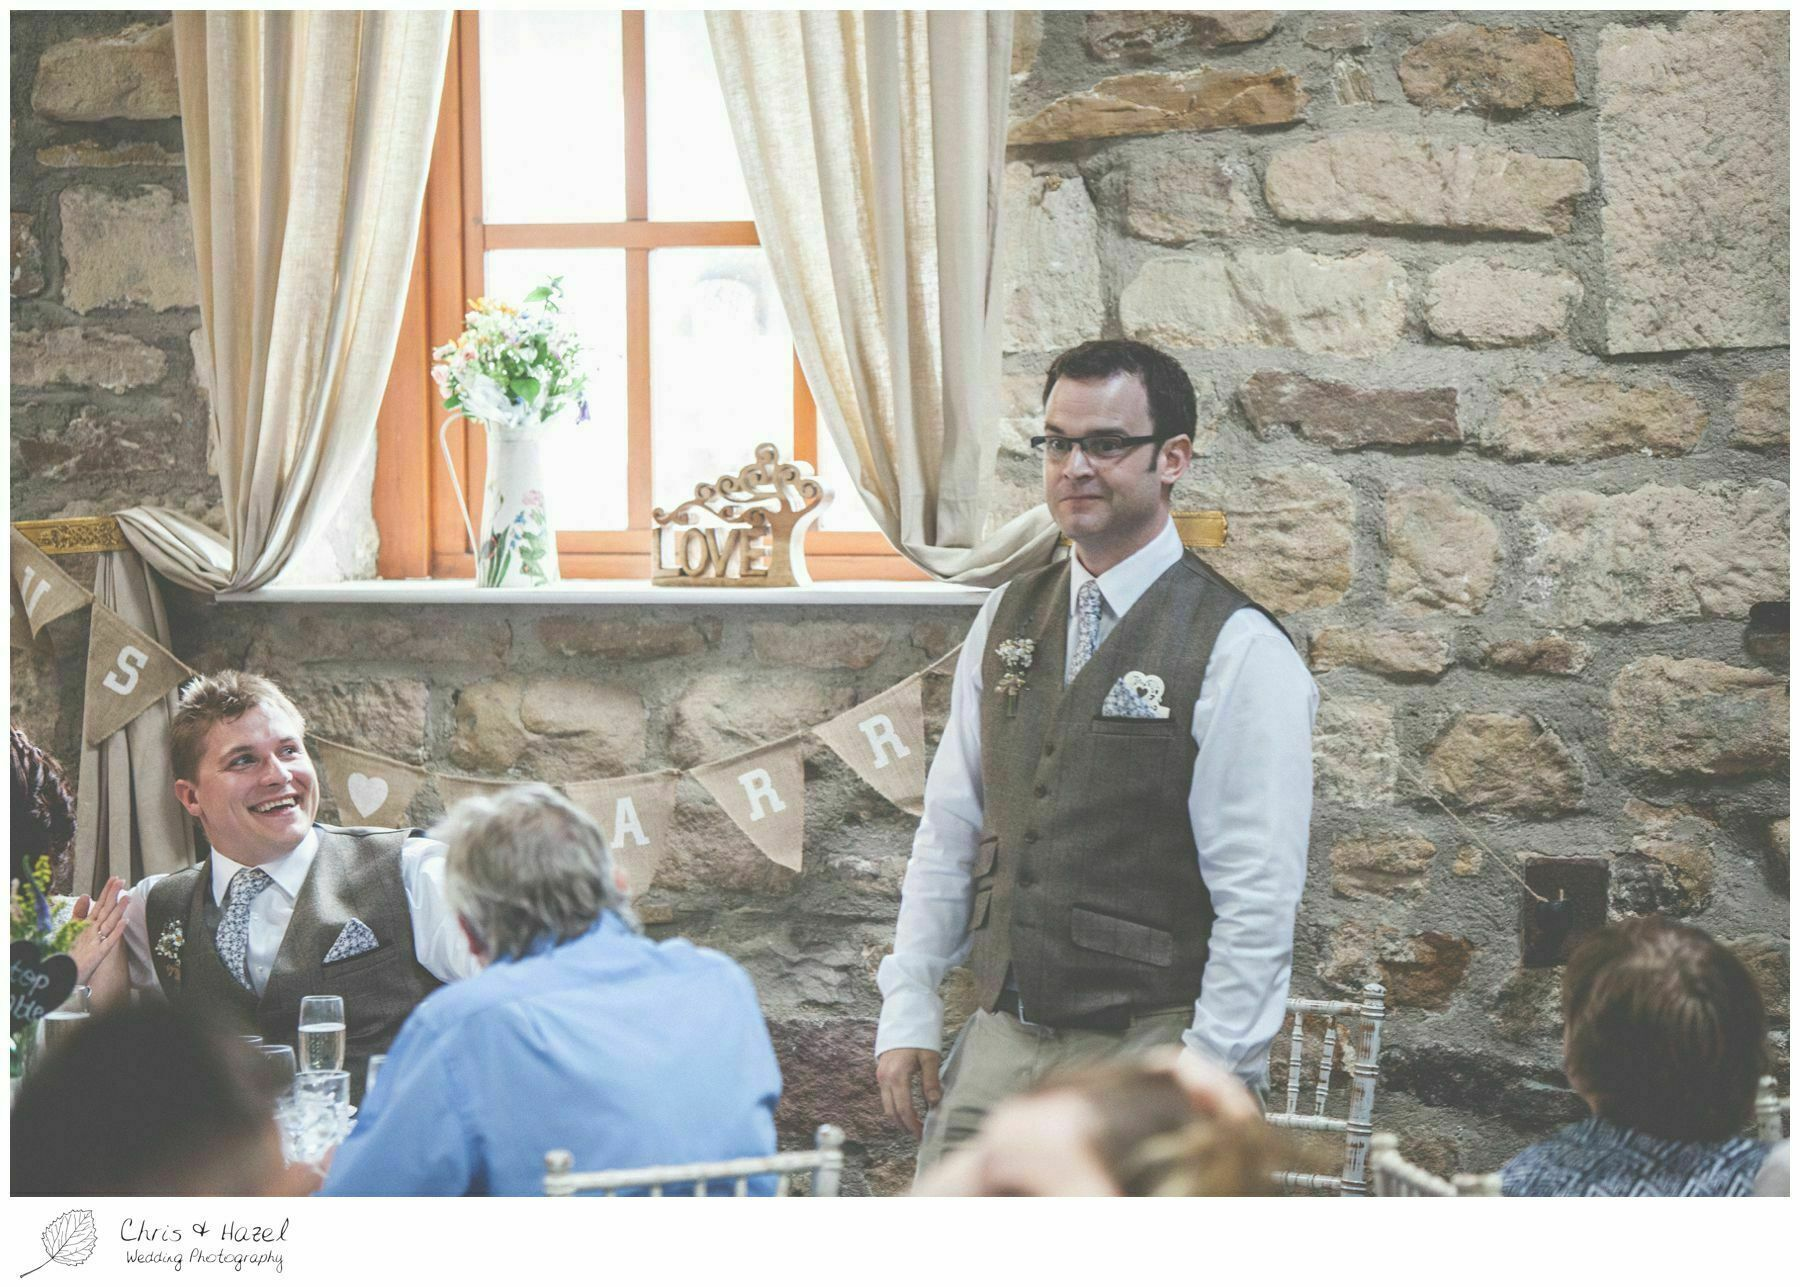 best man speech, wedding breakfast barn, wood wedding theme, eco wedding, love letters, wedding, Eccup Wedding Photographer, Lineham Farm, Wedding Photography Leeds, Chris and Hazel Wedding Photography, Richard Wyatt, Laura Kelly